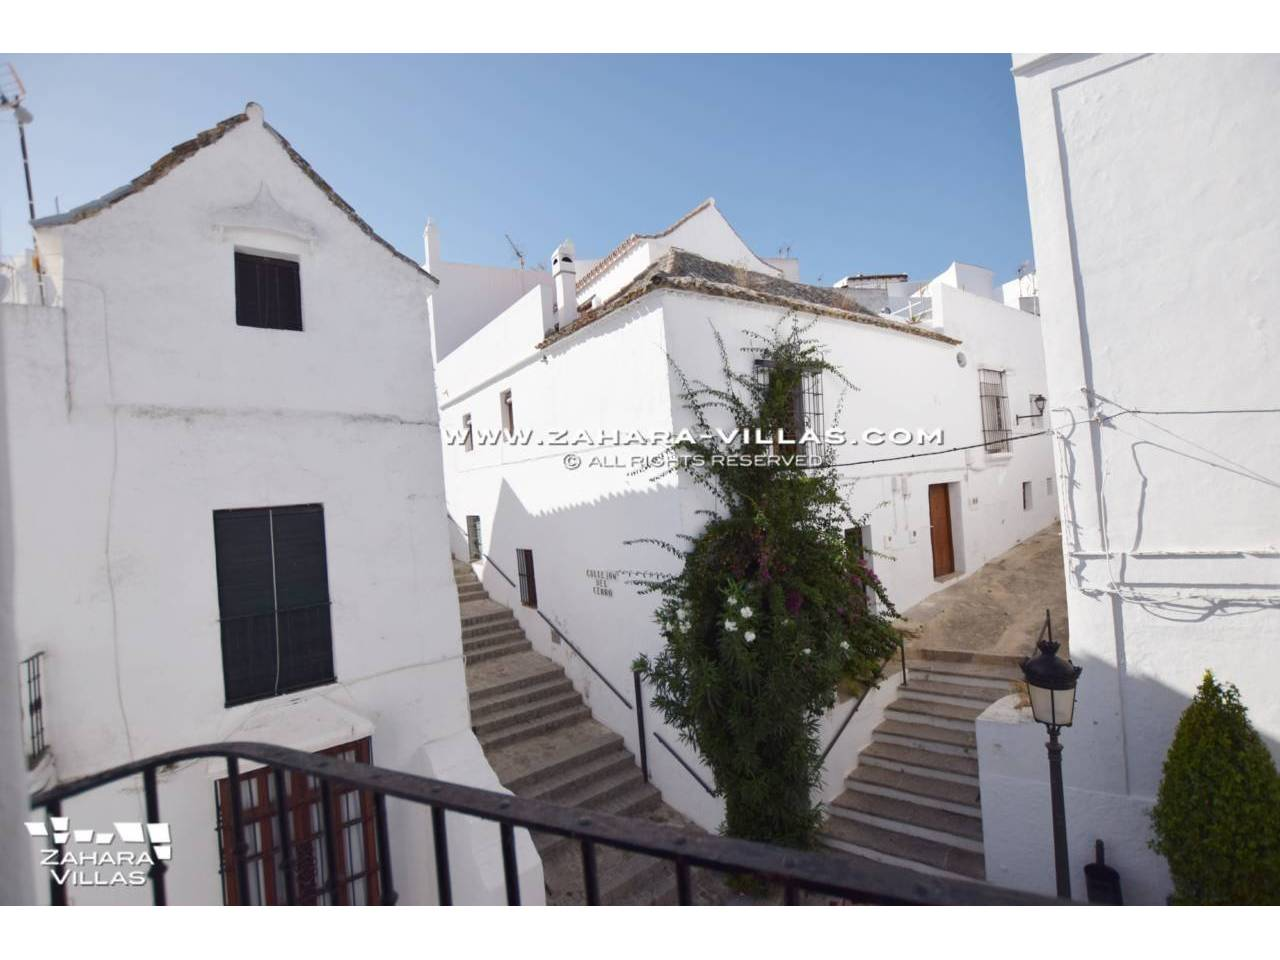 Imagen 11 de House for sale located in pedestrian street of Vejer de la Frontera